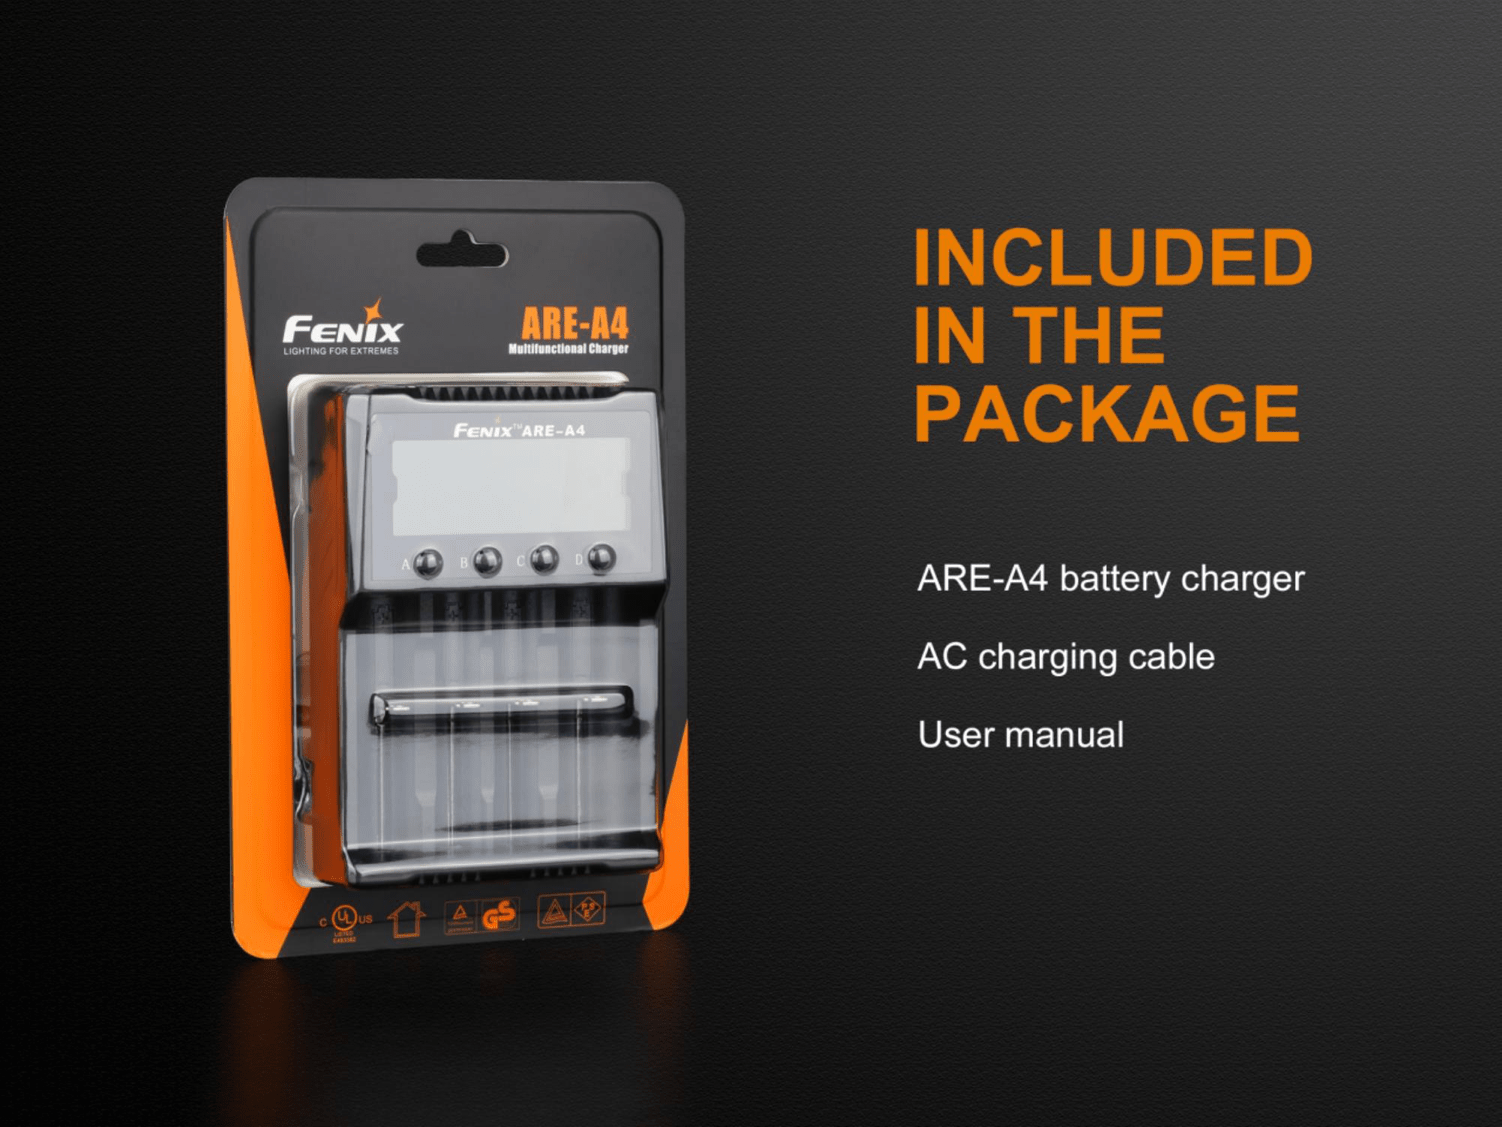 Fenix ARE A4, Four Slot Multifunctional Rechargeable Battery Charger, Compatible to Lithium Ion Batteries and Rechargeable Ni-MH and Ni-Cd AA, AAA, and C batteries, Charging and Discharging as power bank charger, Powerful 4 Battery Charger, Smart charger with LCD Screen Display